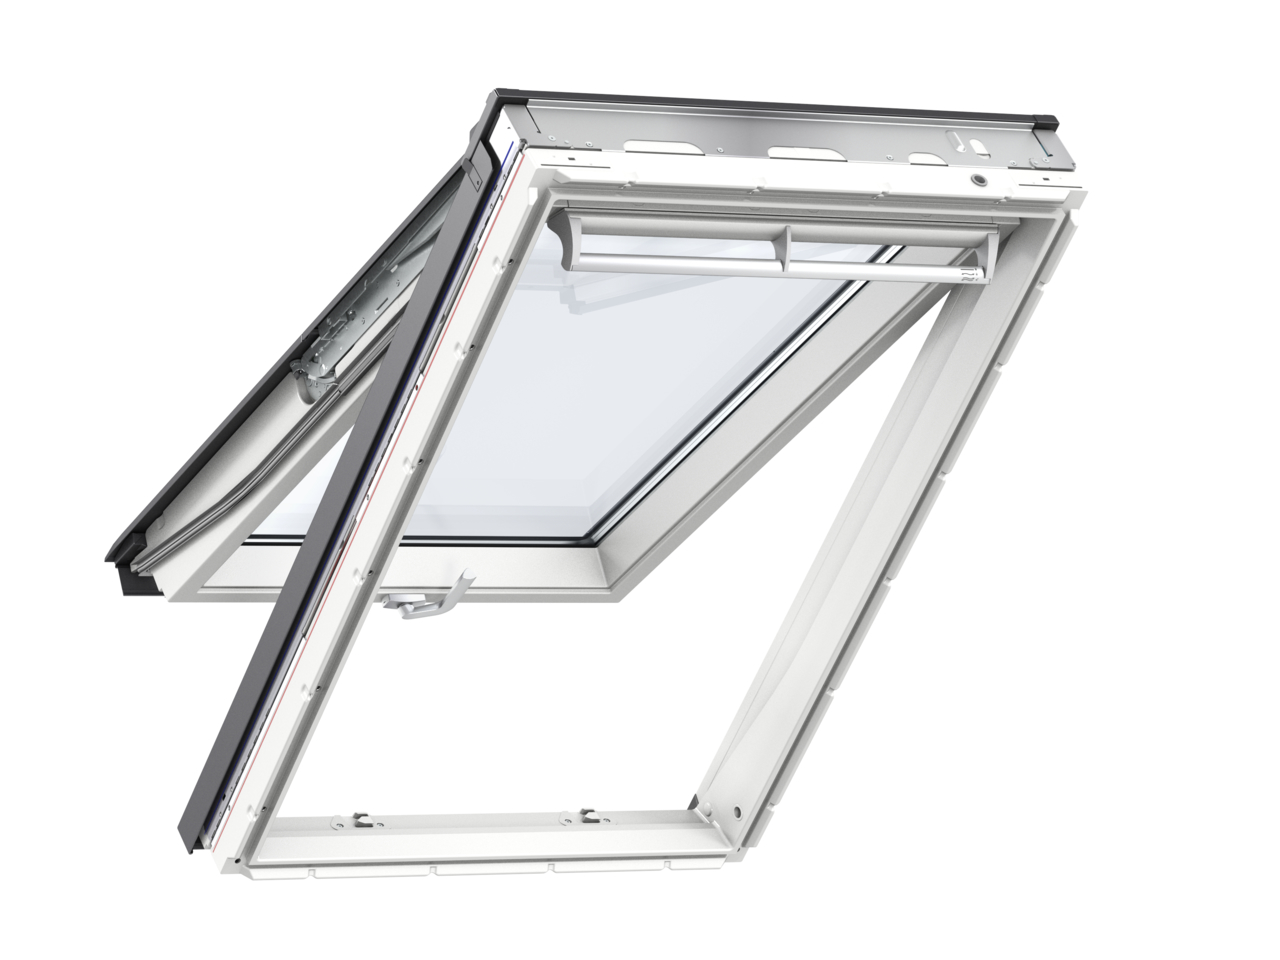 Velux GPU MK04 780 x 980mm Top Hung 60Pane Roof Window - White Polyurethane